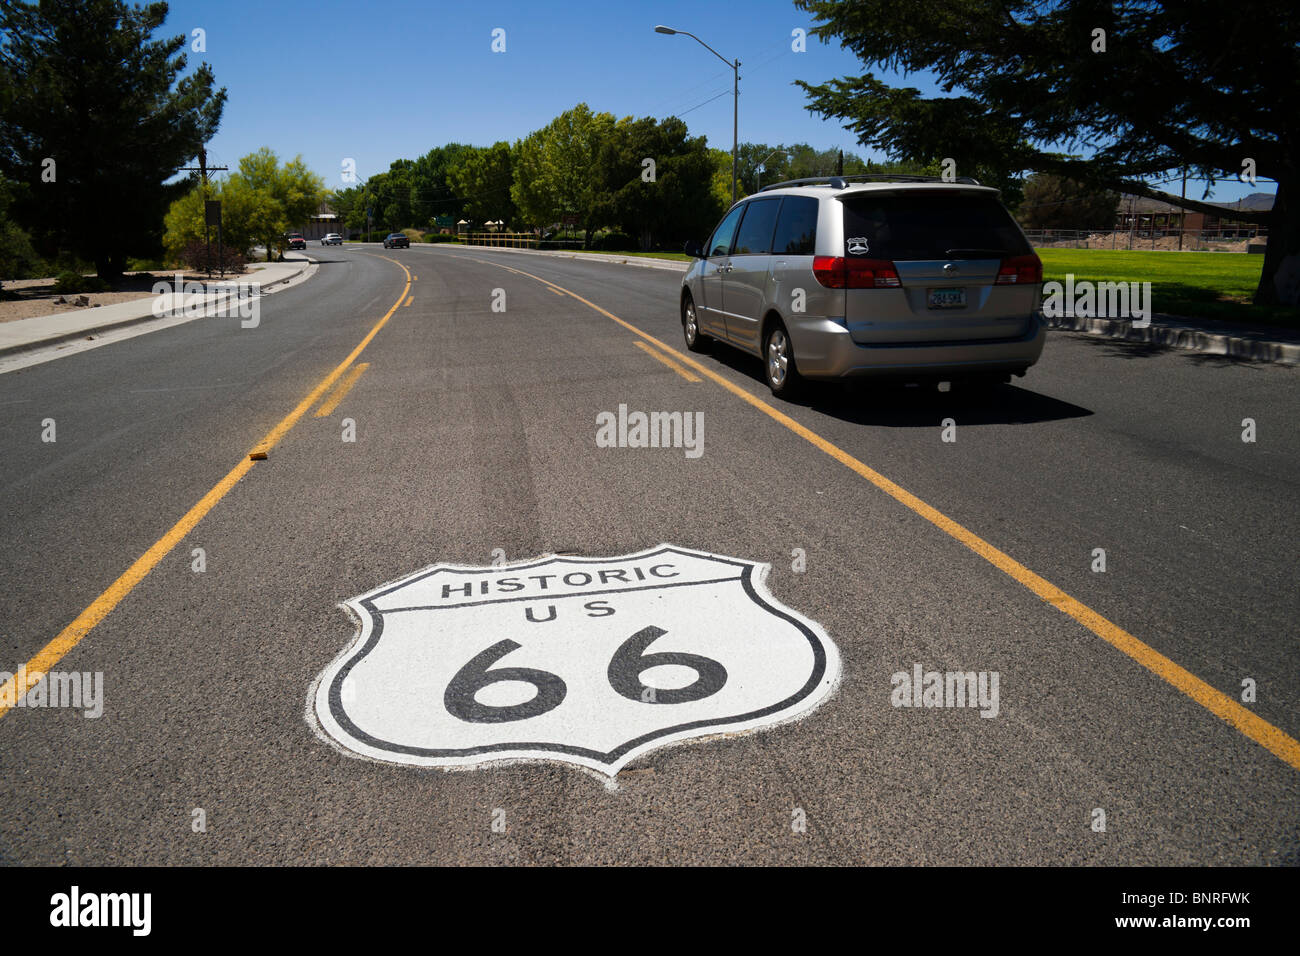 route 66 painted road sign stockfotos route 66 painted. Black Bedroom Furniture Sets. Home Design Ideas